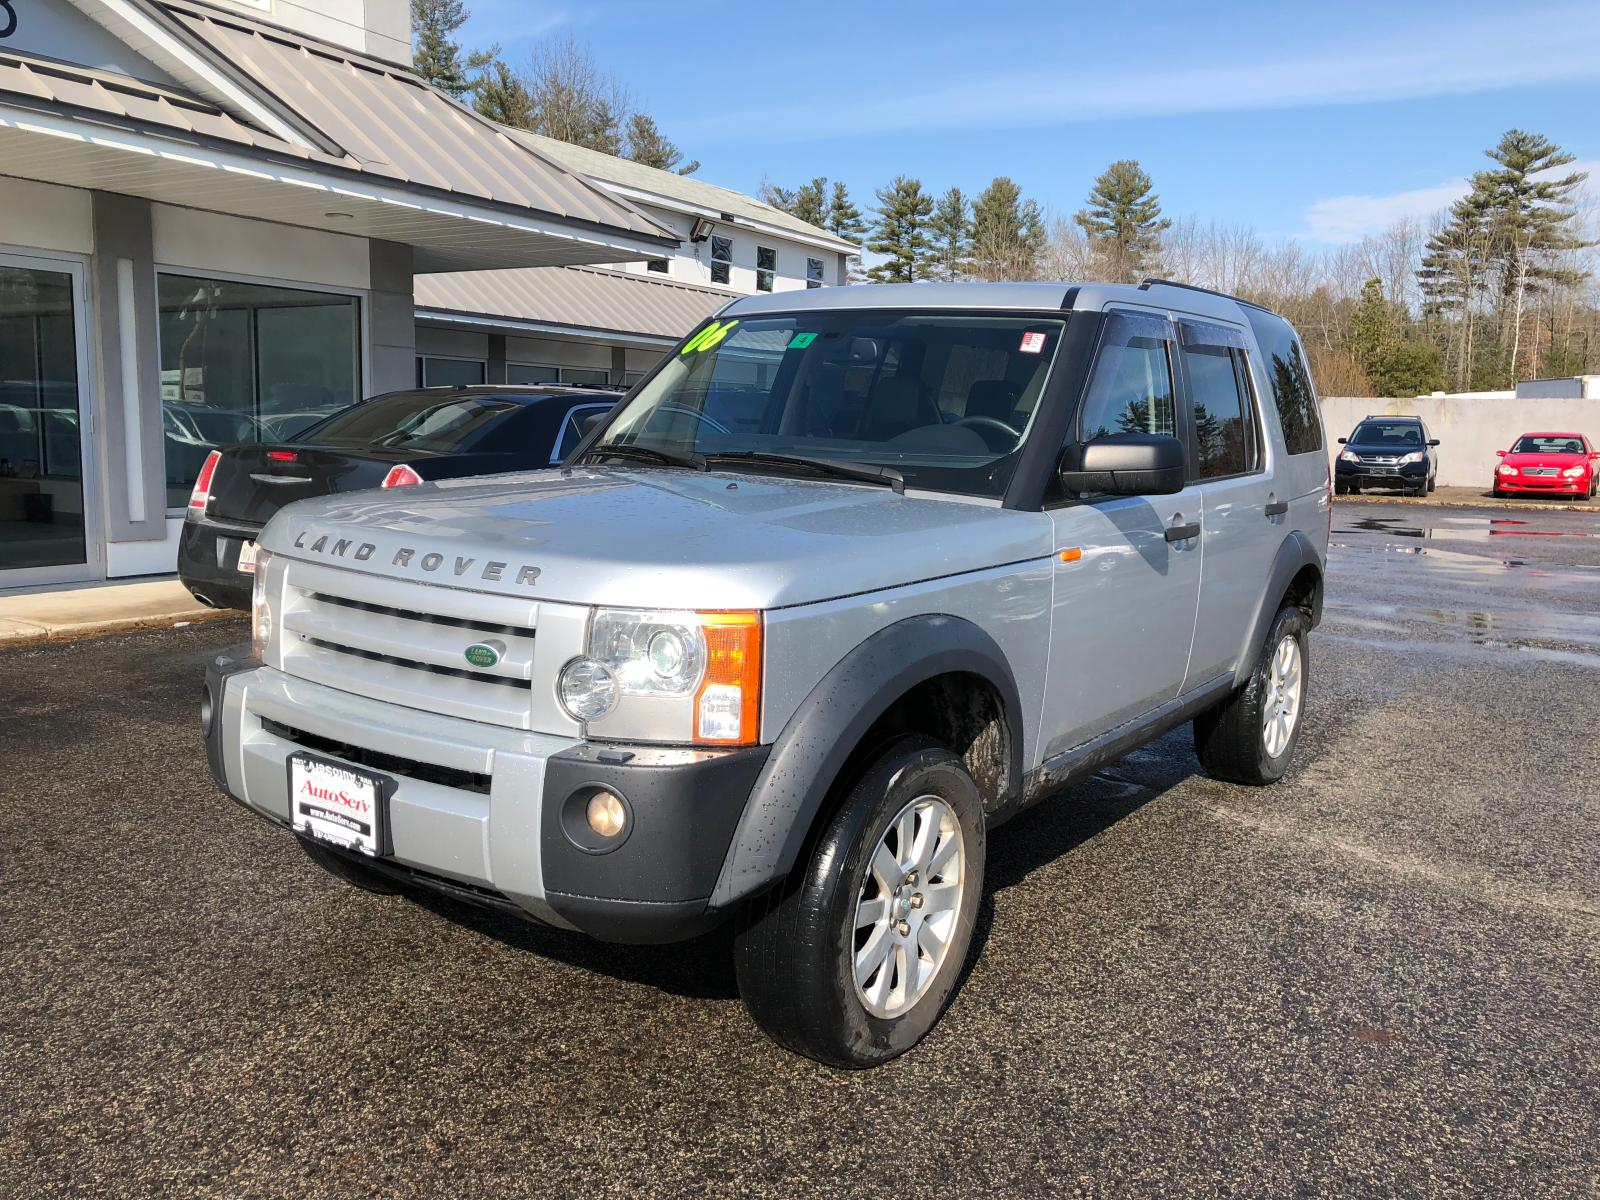 landrover hse for rover oh lot east auctions on online sale view carfinder left auto en in cleveland cert copart black title land salvage of